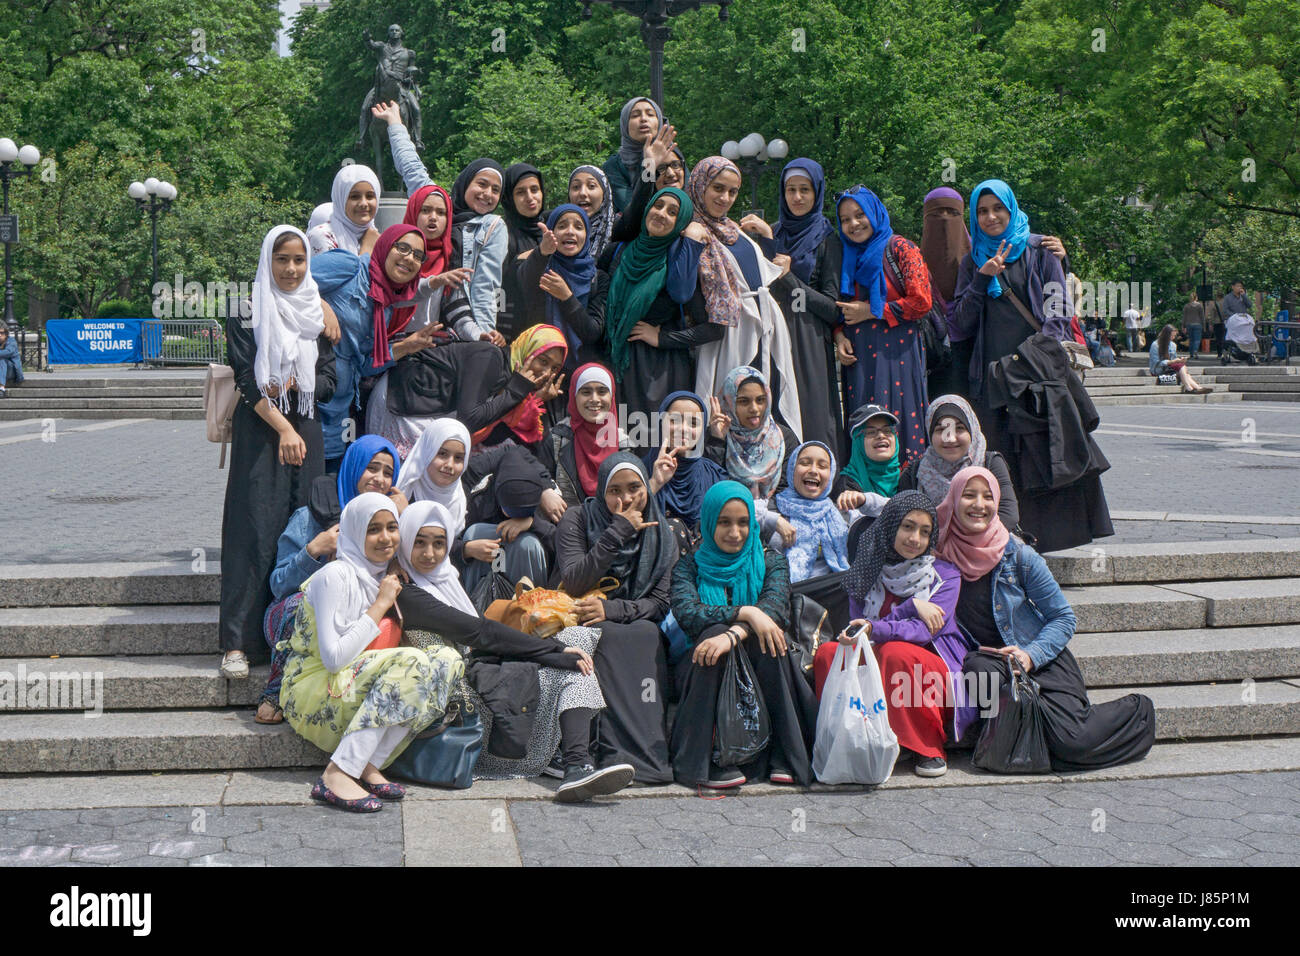 A group of religious Muslim females classmates in hijabs pose for a class photo in Union Square Park in Manhattan, - Stock Image